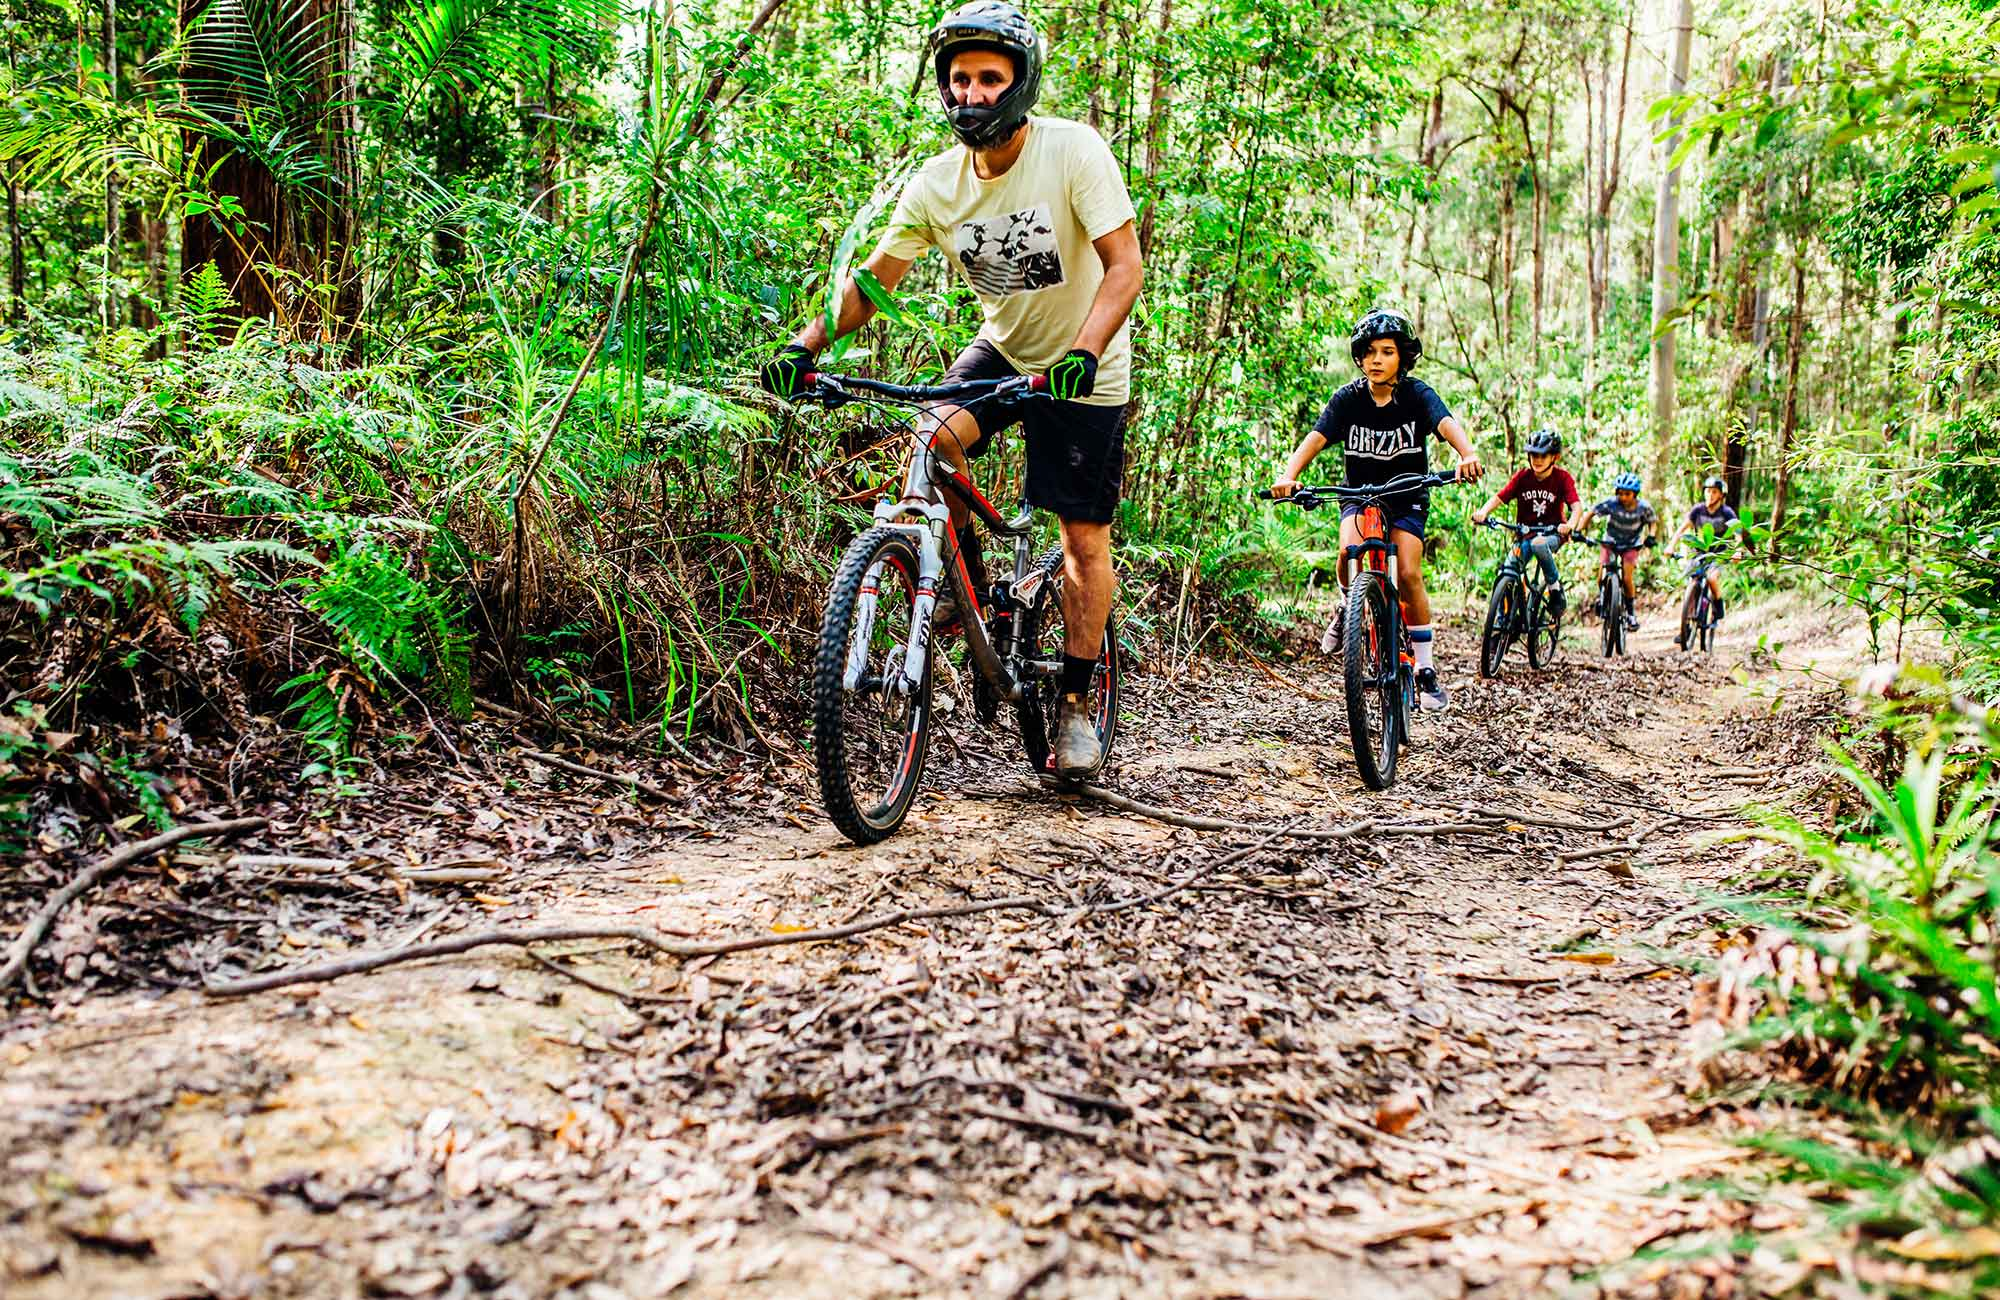 A man and 4 children ride along a forest track, part of the Muurlay Baamgala cycle trails in Bongil Bongil National Park. Photo: Jay Black/DPIE